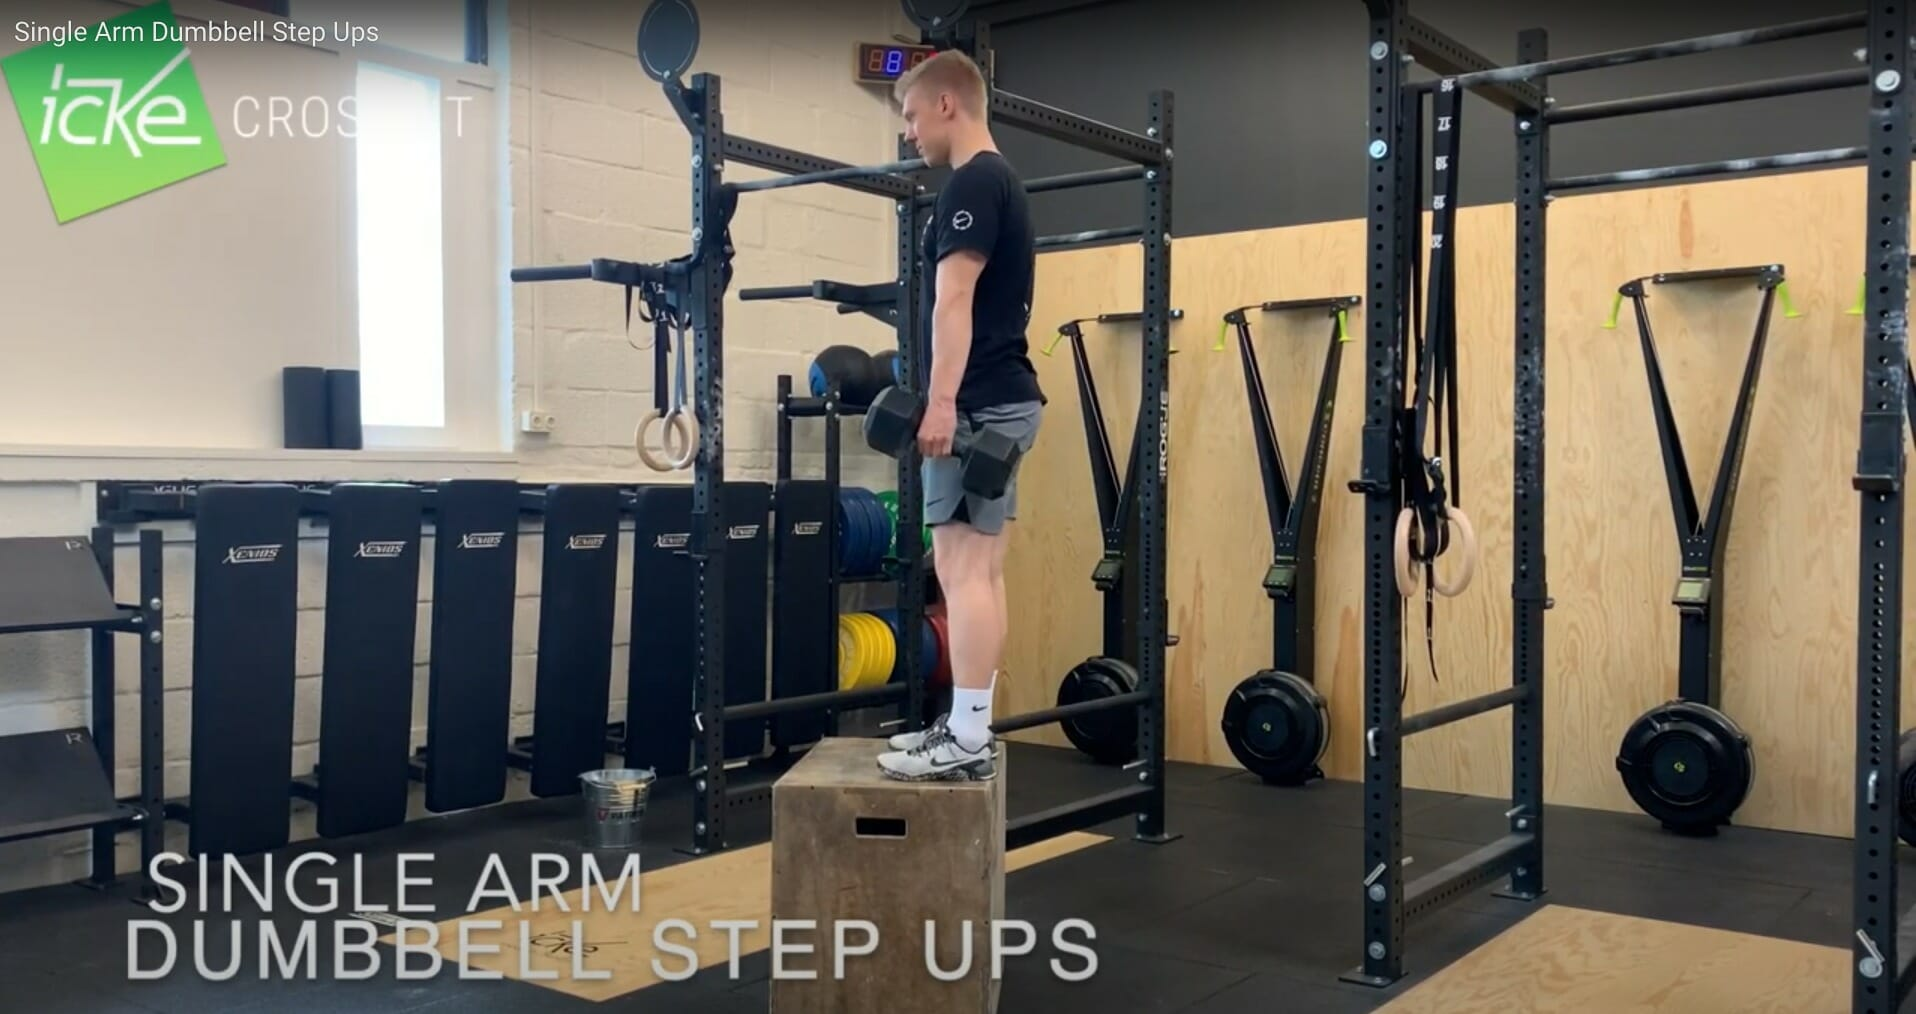 Single Arm Dumbbell Step-Up - Technikvideo